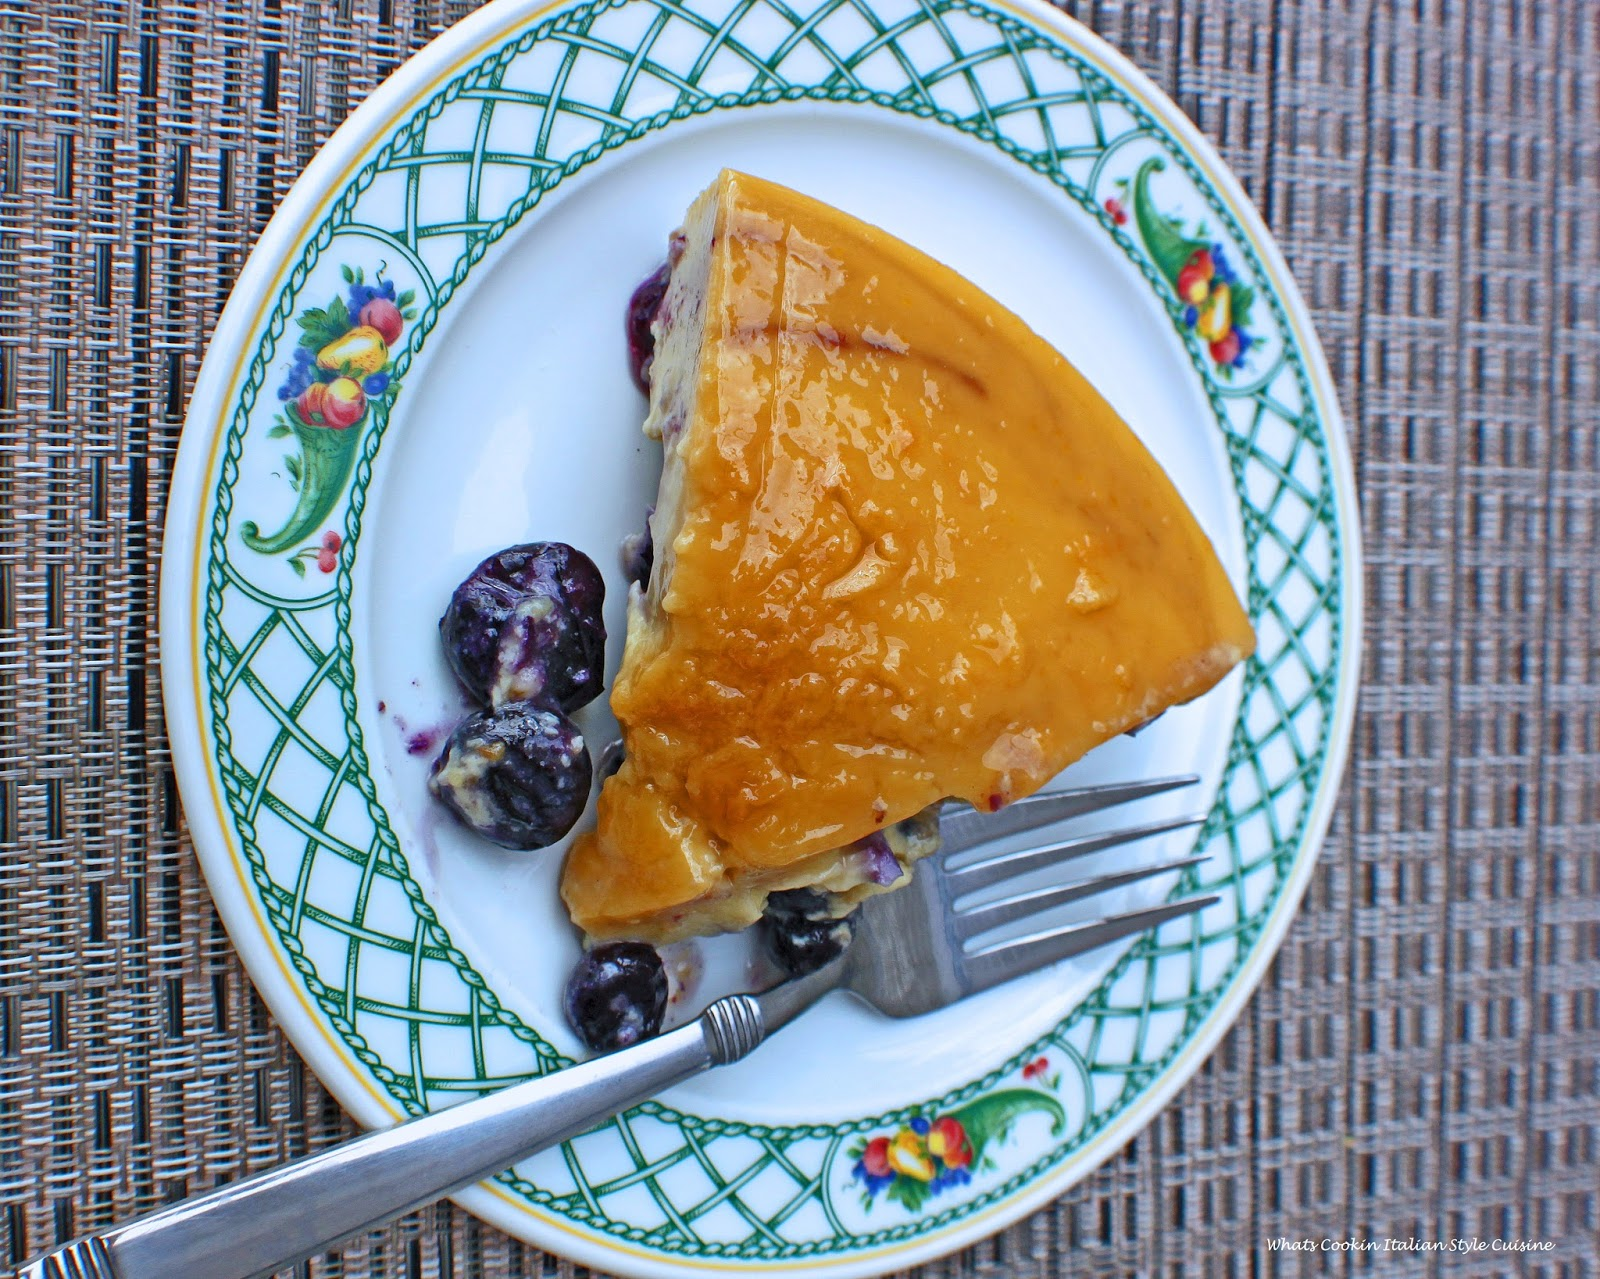 Sliced Blueberry Flan on a fruit trim Lenox china plate showing the flan that will be served